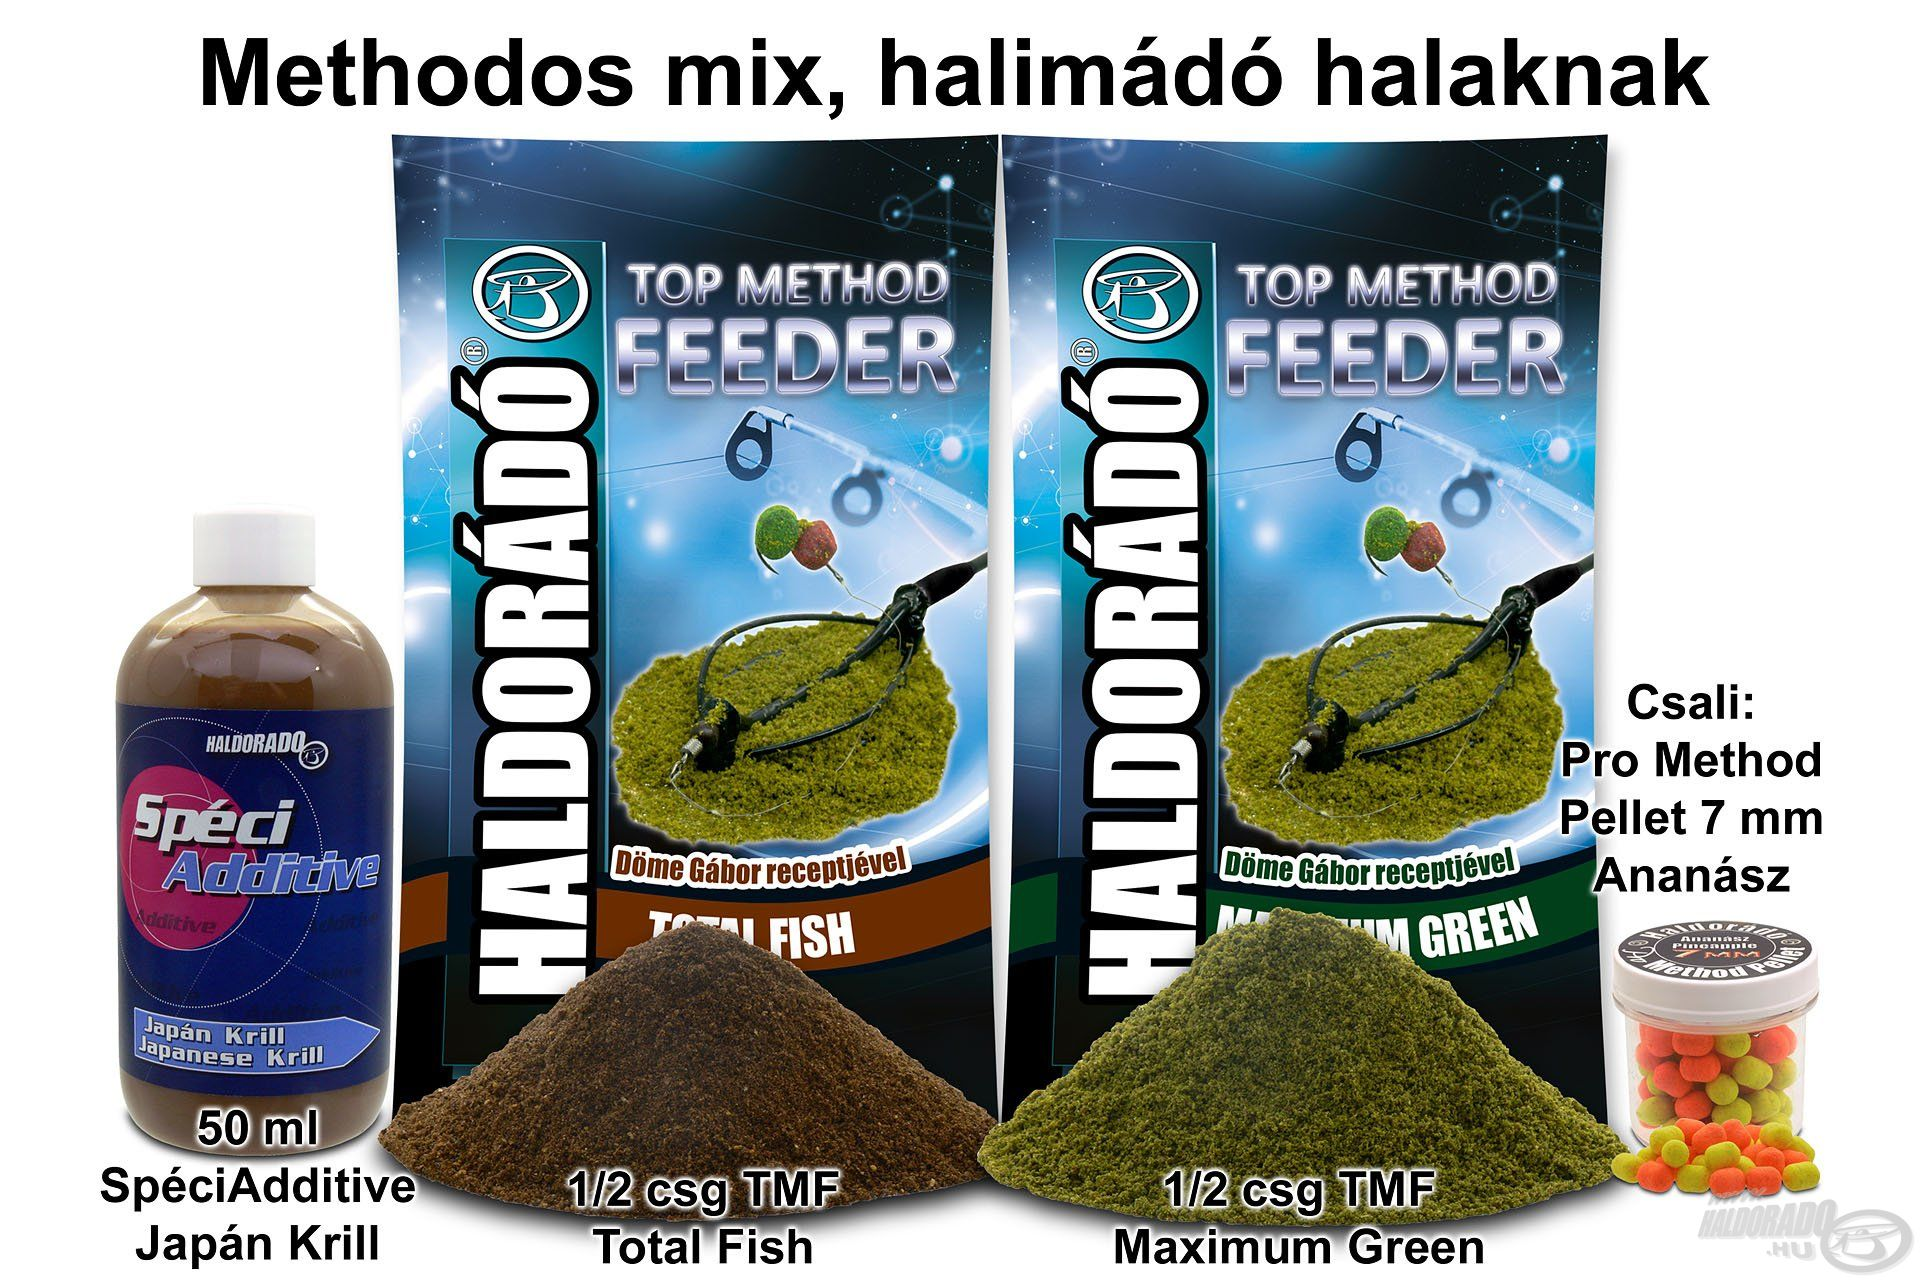 Methodos mix halimádó halaknak